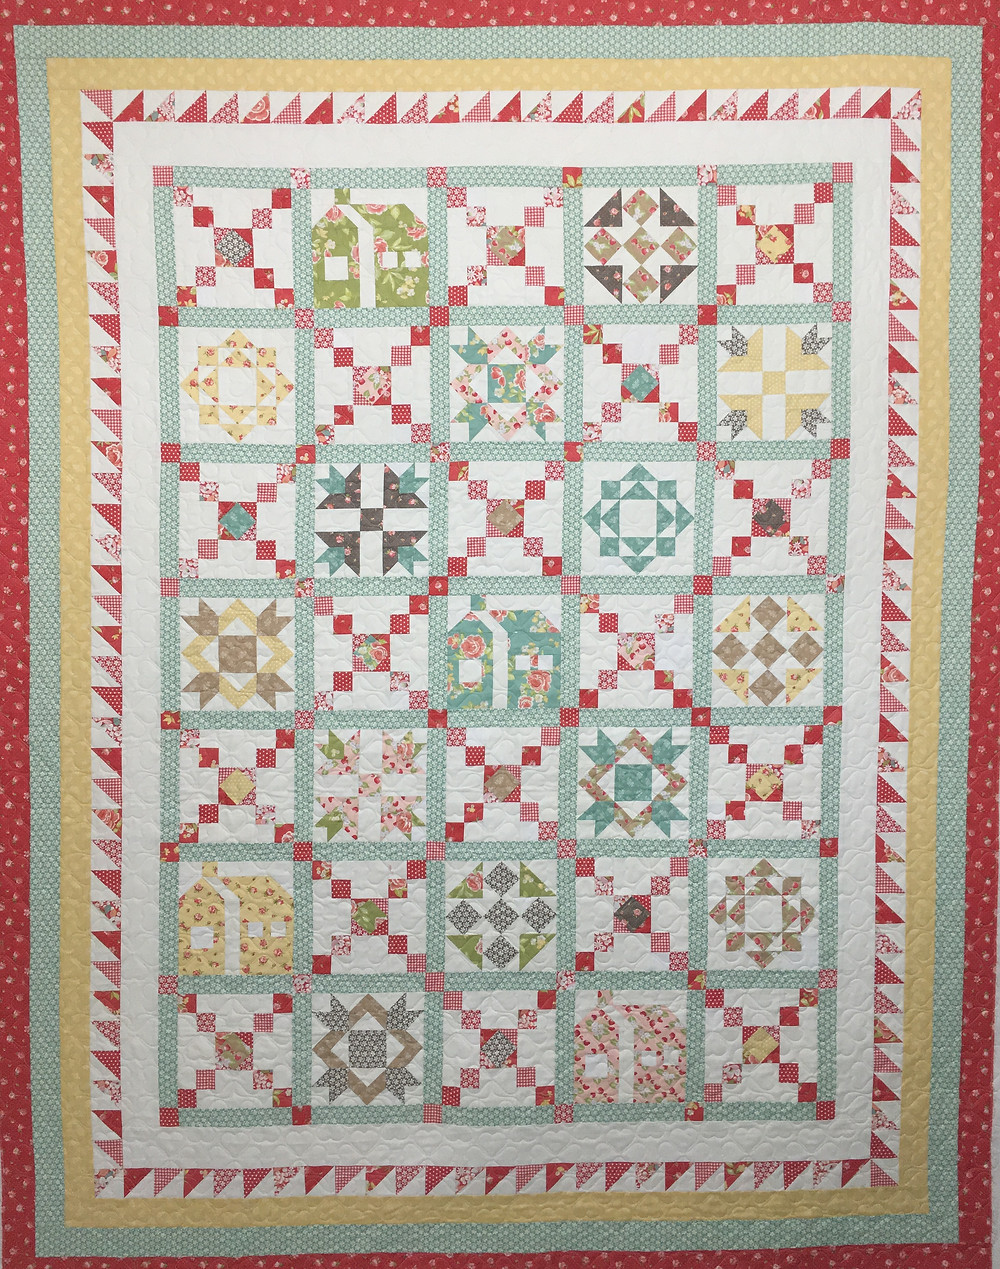 Country Houses quilt by Deb Taylor